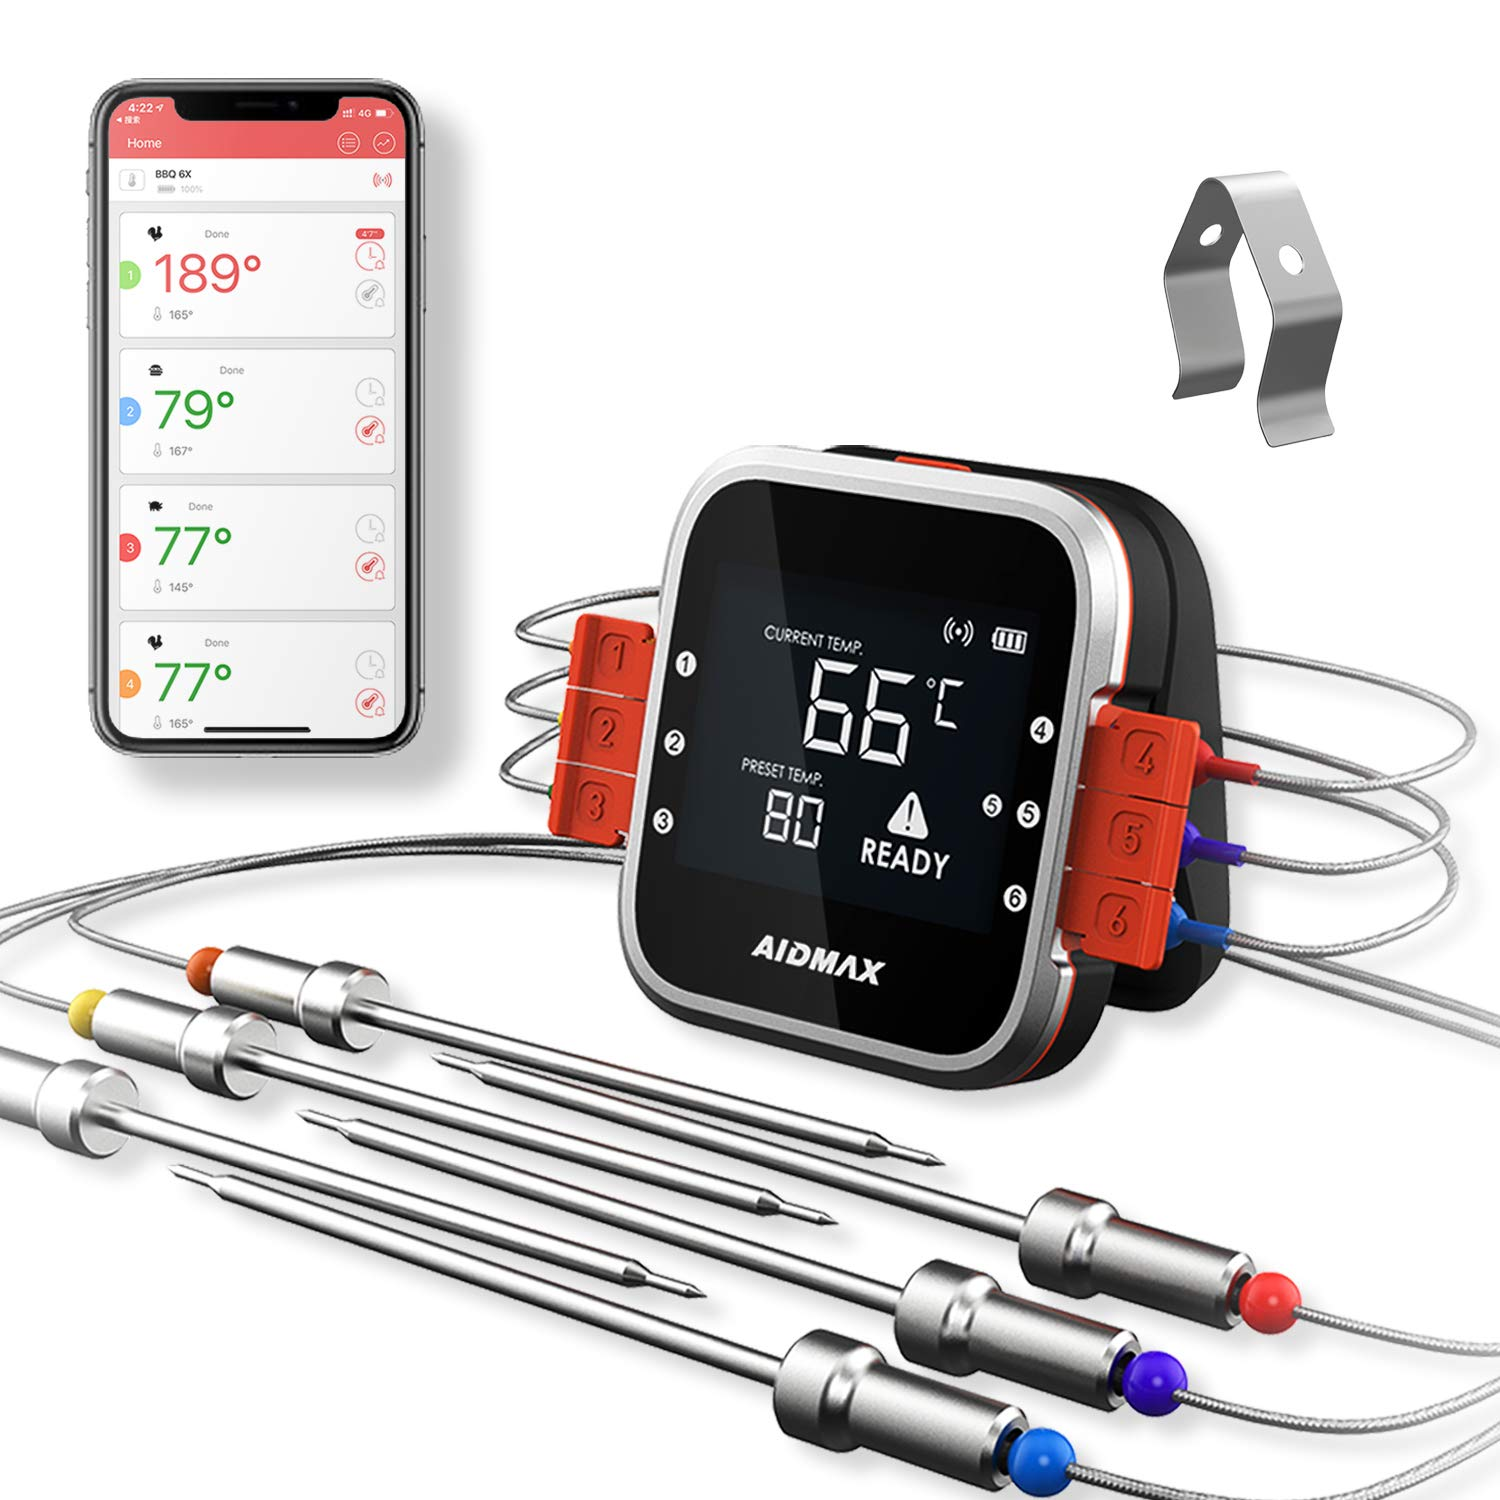 AidMax Wireless Grill Thermometer Digital 6 Probes for Meat Food BBQ Inside Smoker Oven with Bluetooth Phone App